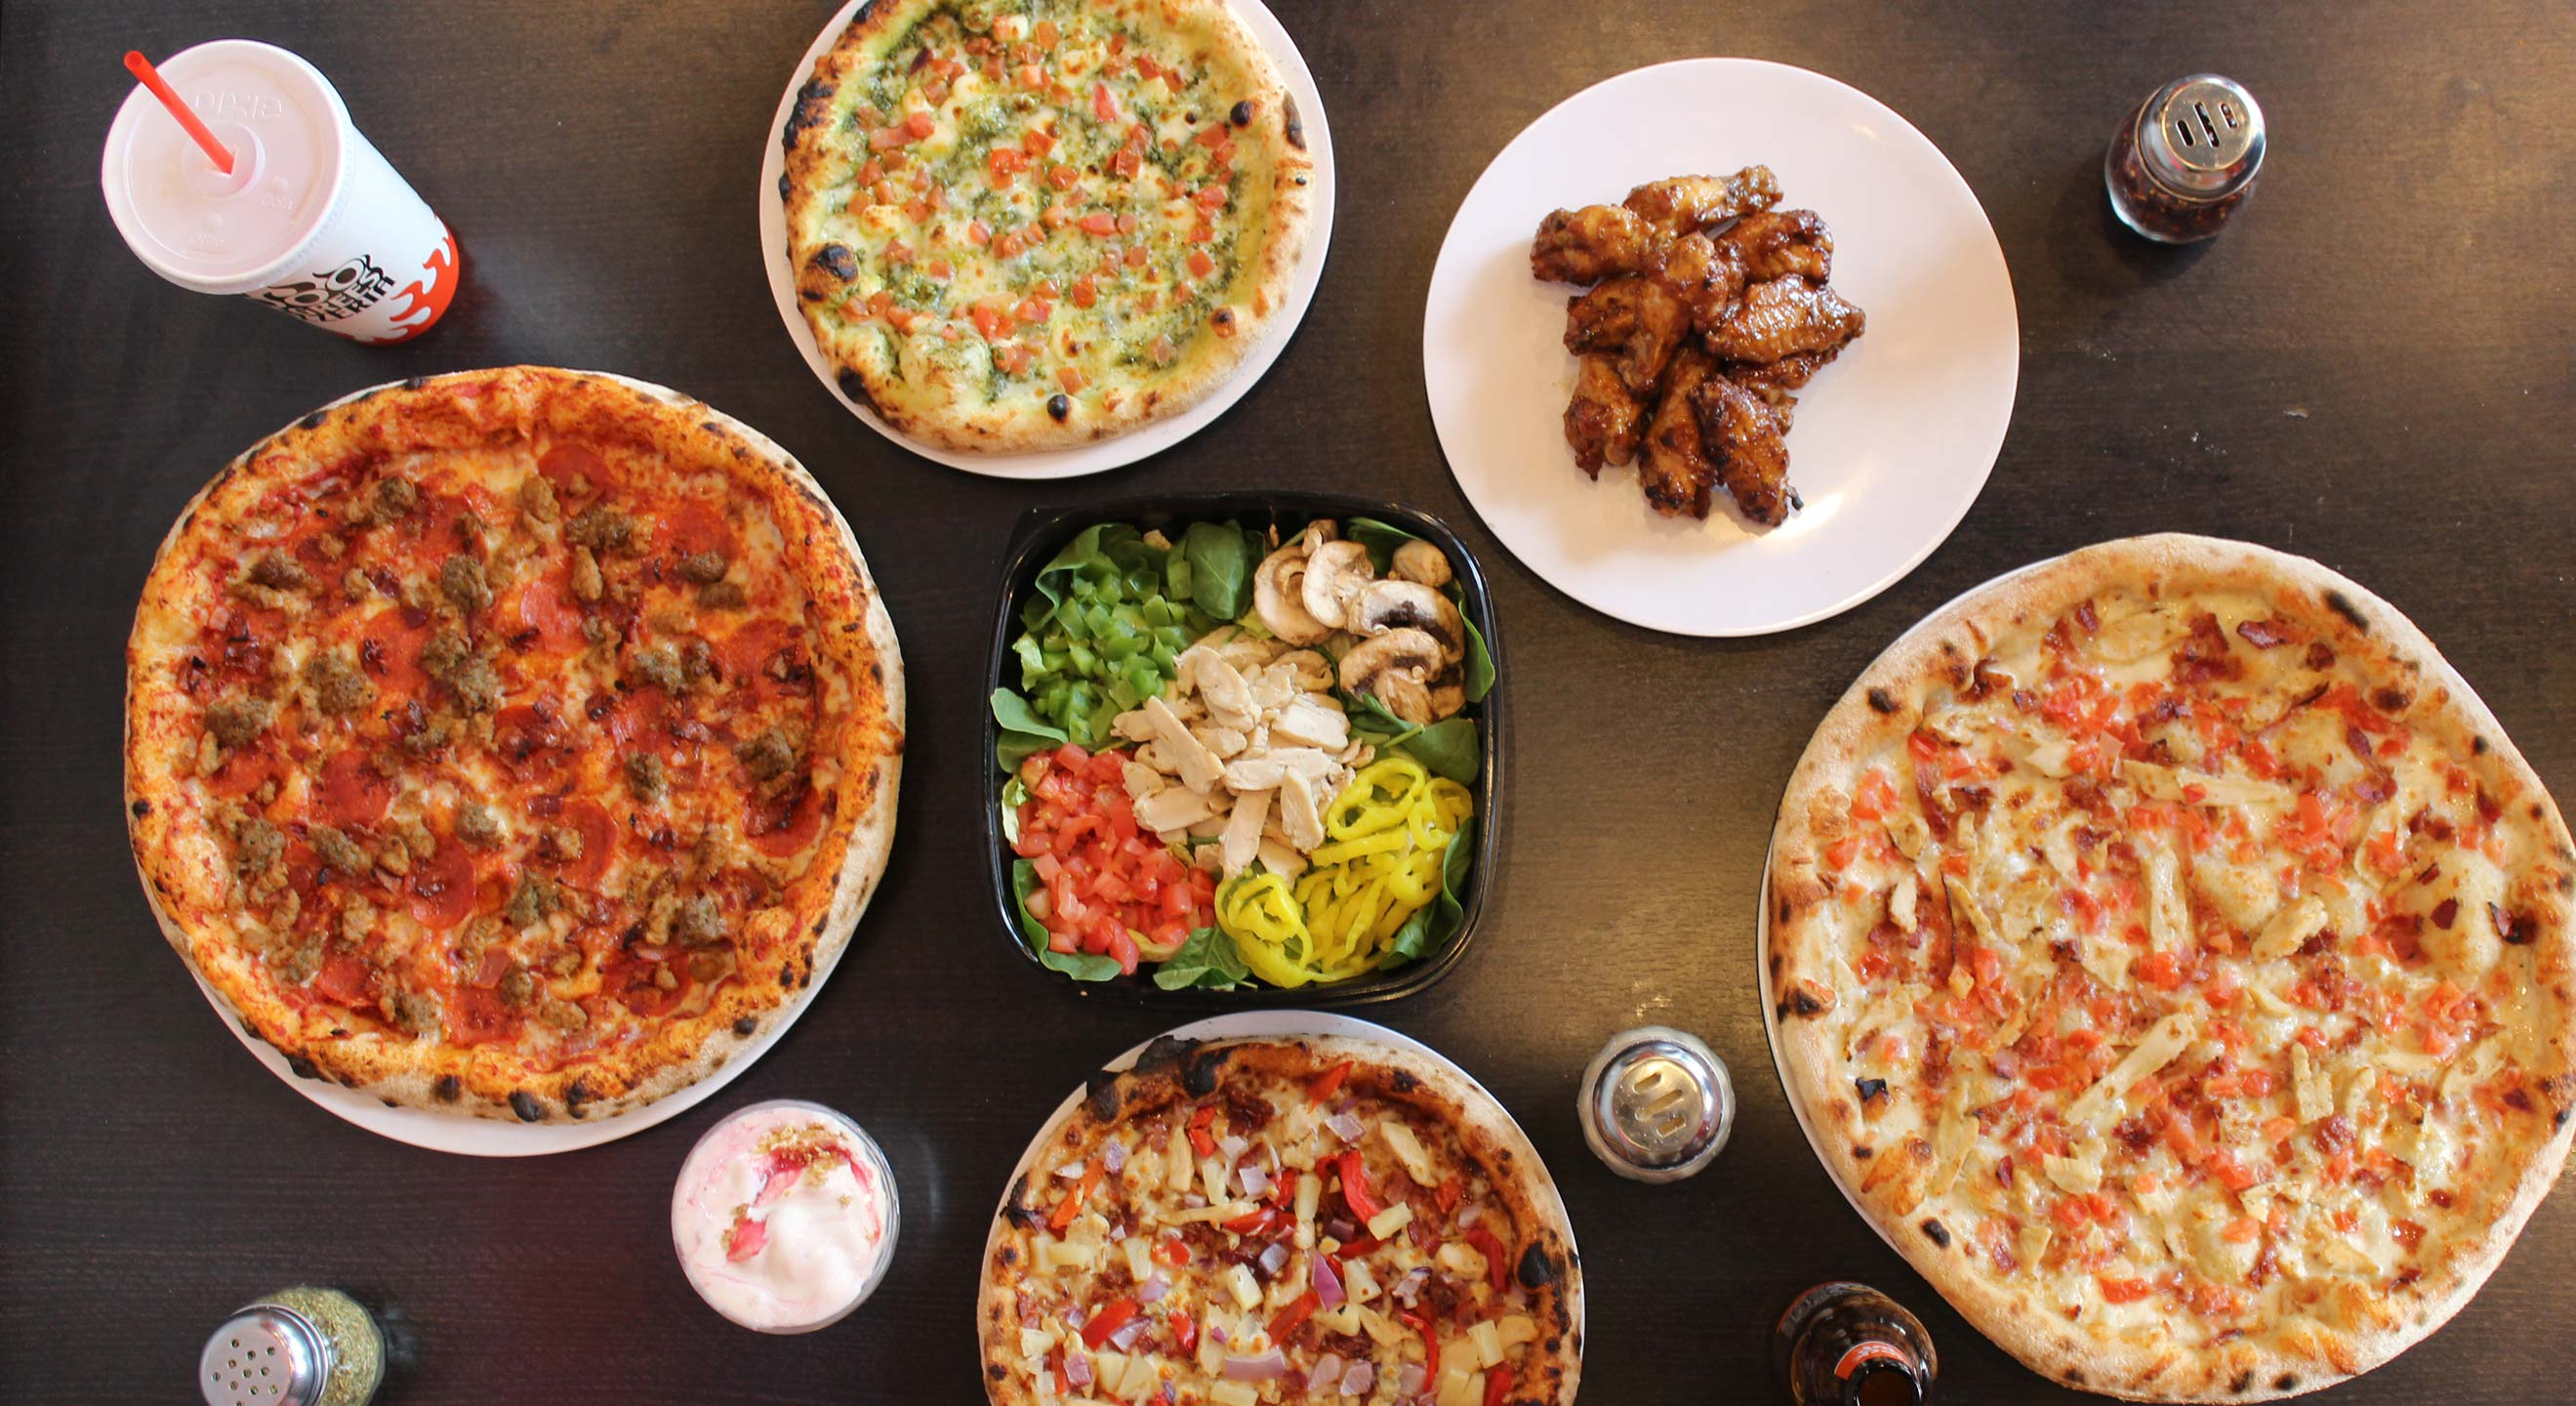 A spread of food at 1000 Degrees Neapolitan Pizza